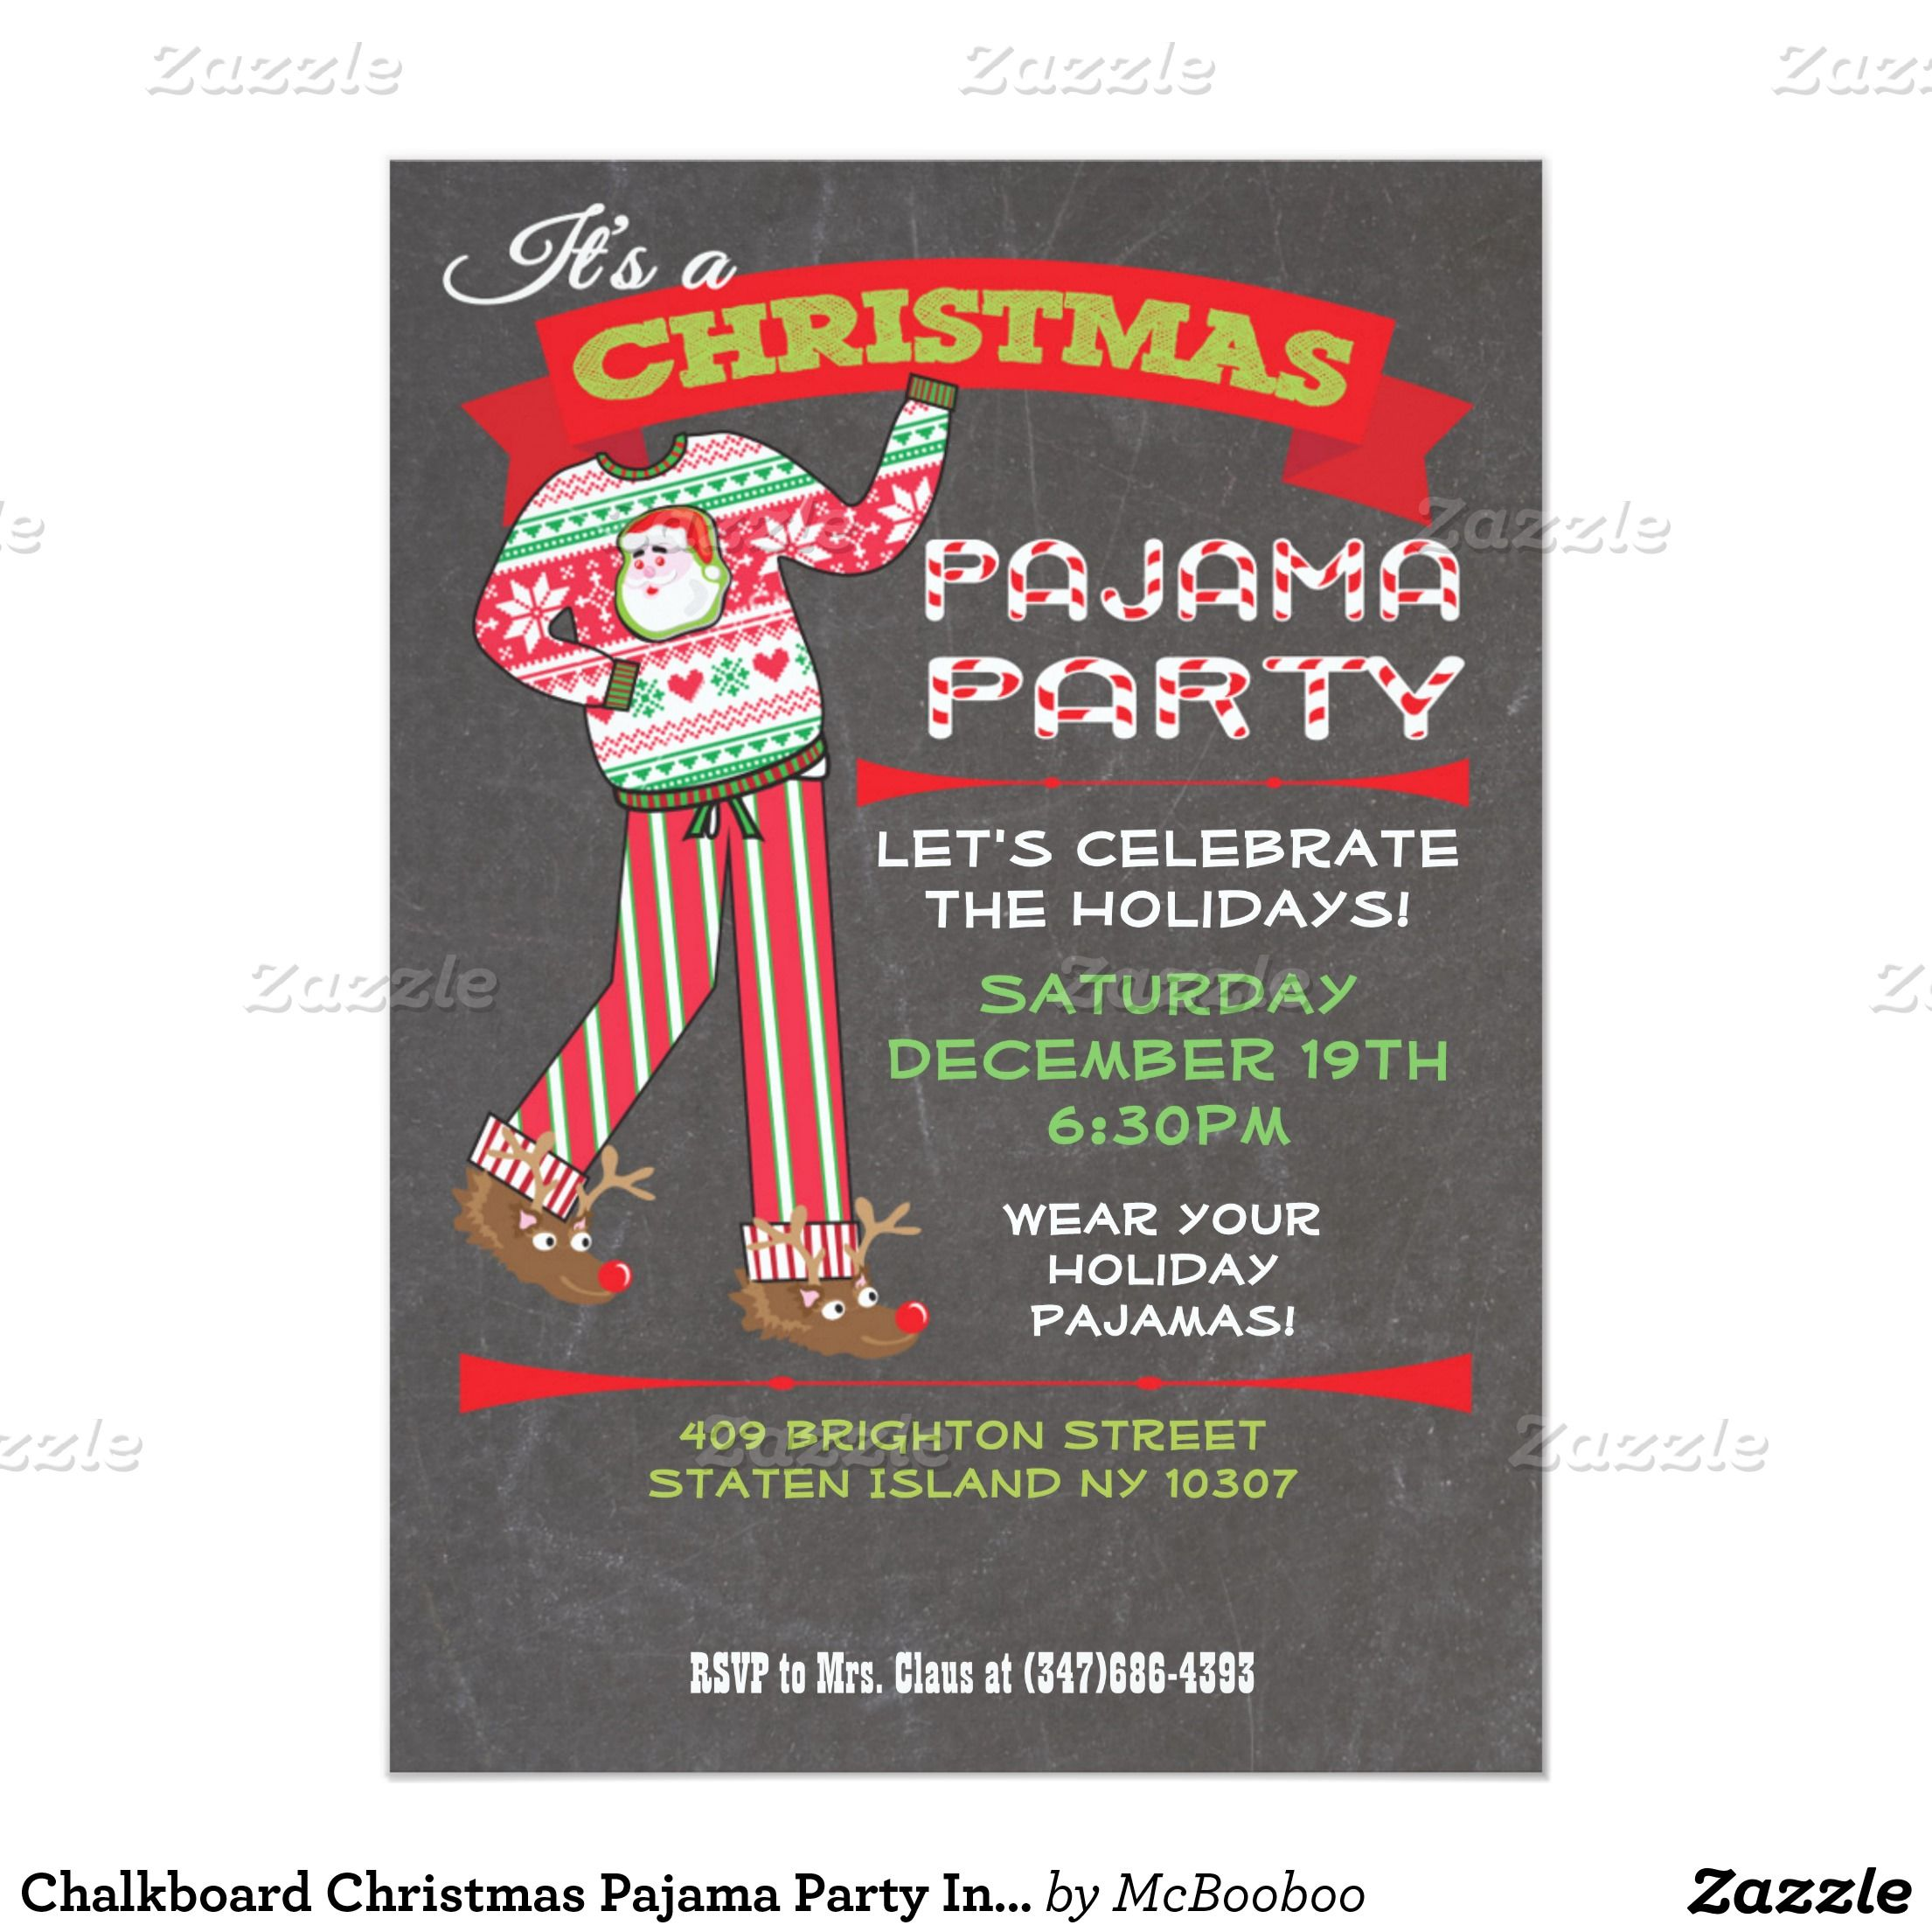 Christmas Holiday Party: Chalkboard Christmas Pajama Party Invitations